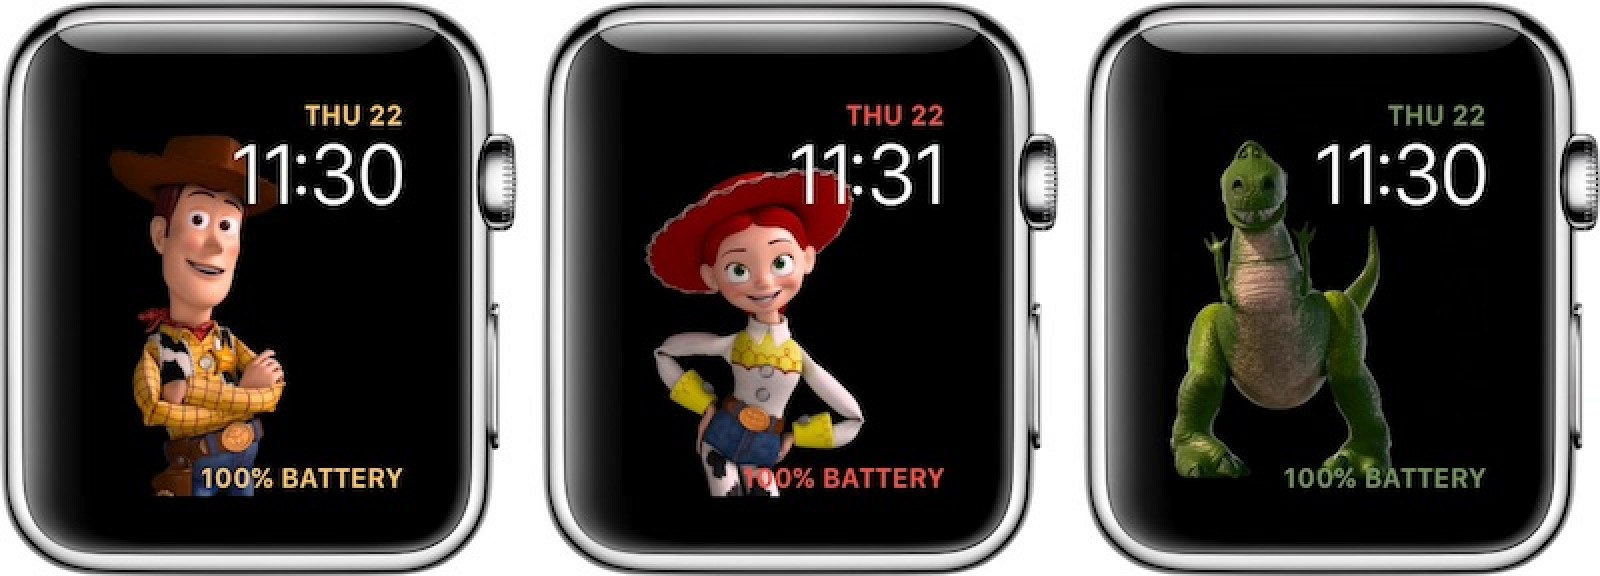 Dach Toy Story : Apple watch s toy story face goes live in watchos beta